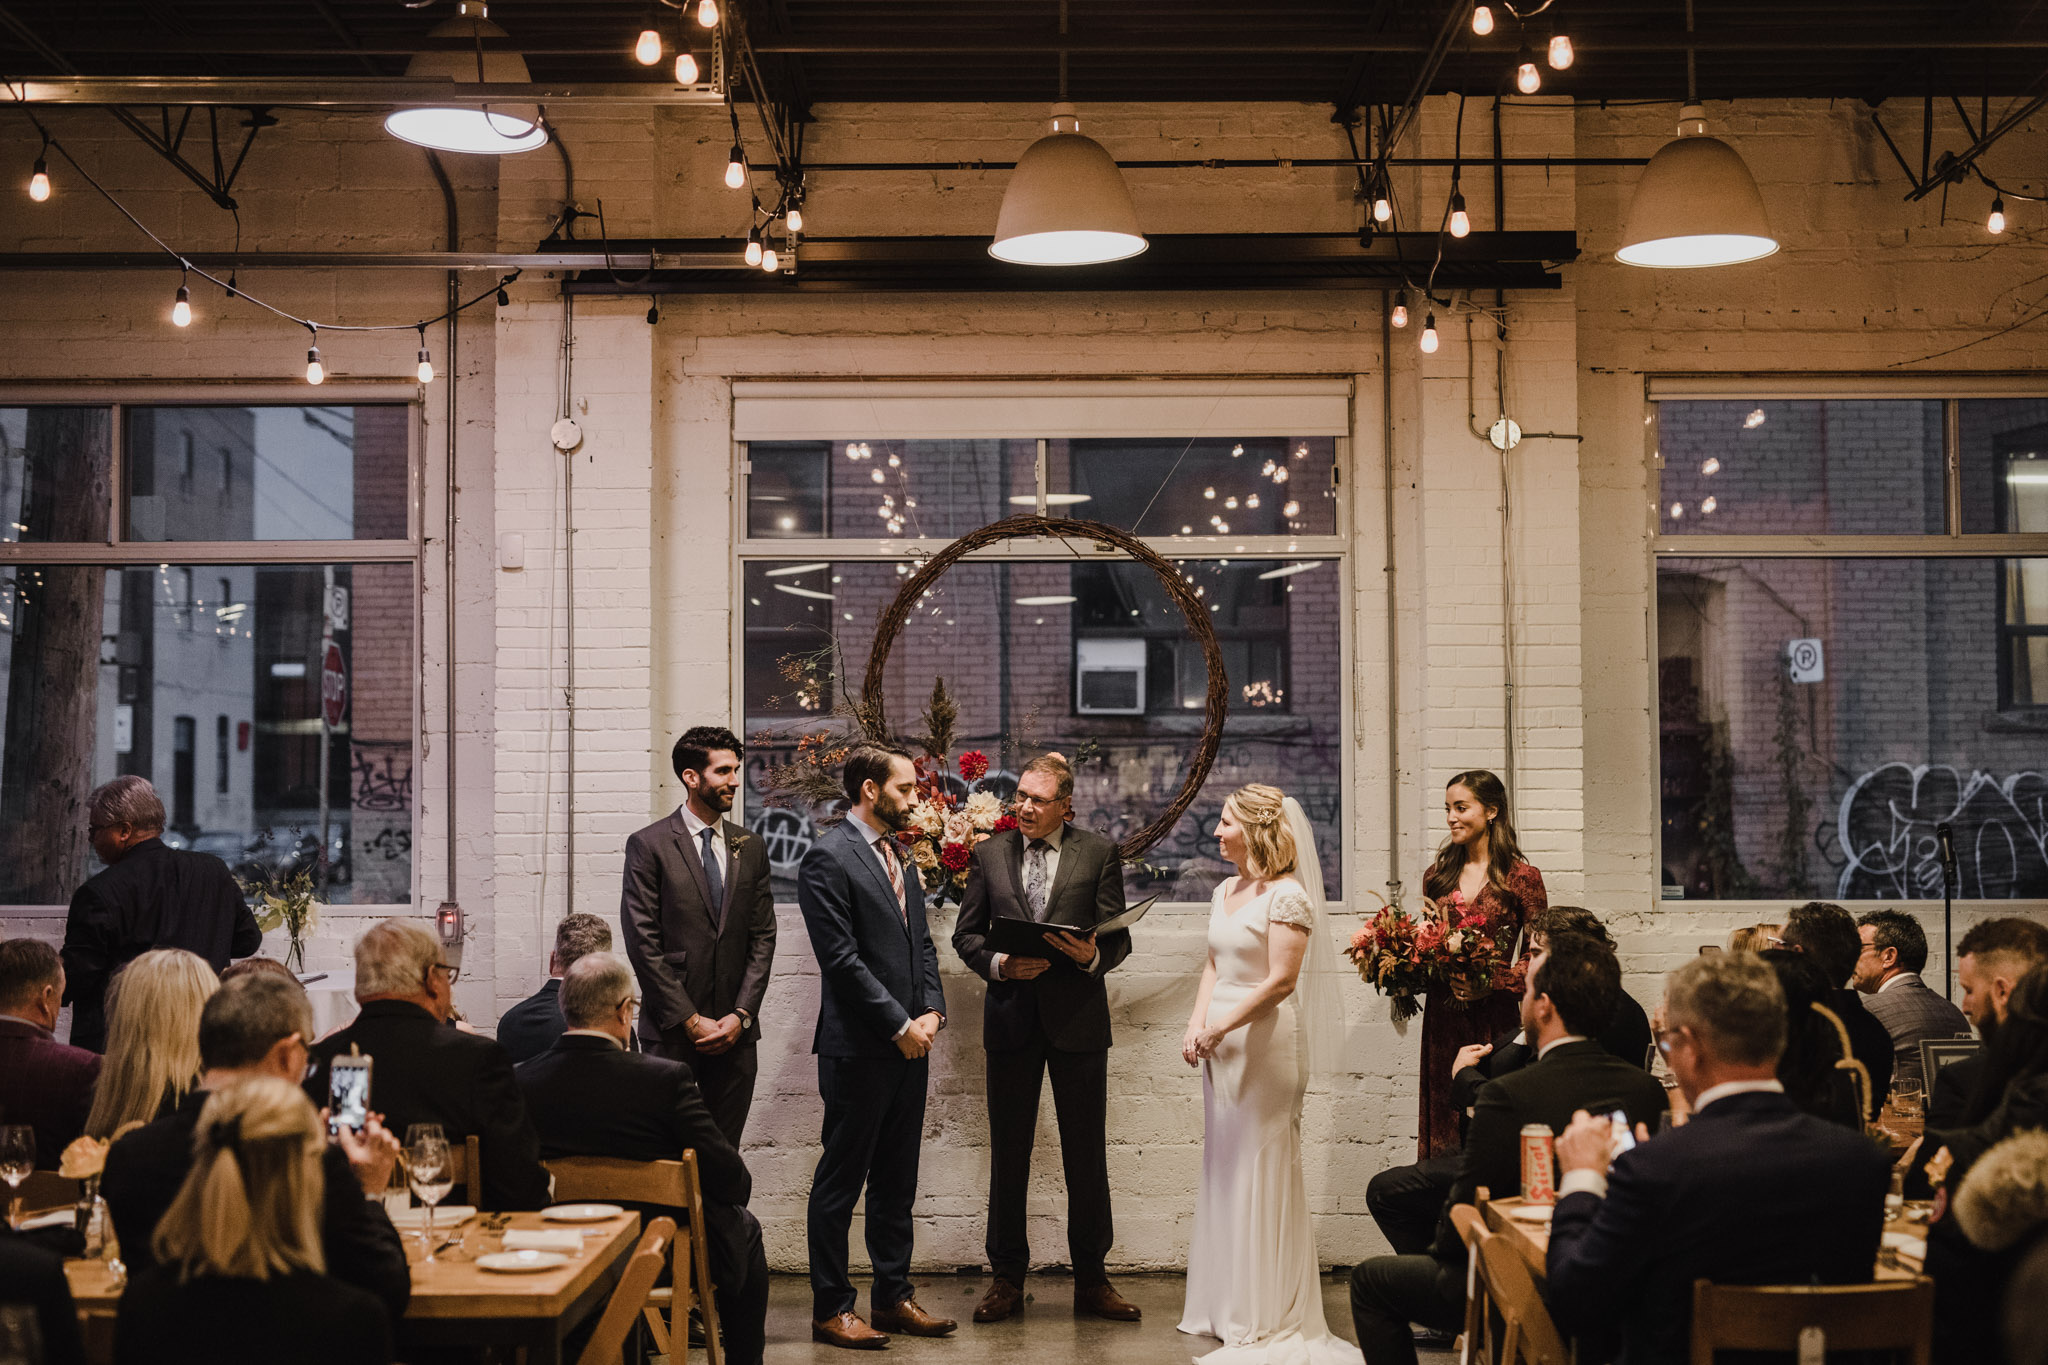 Toronto Coffee Shop Wedding - Propeller cafe - at the alter